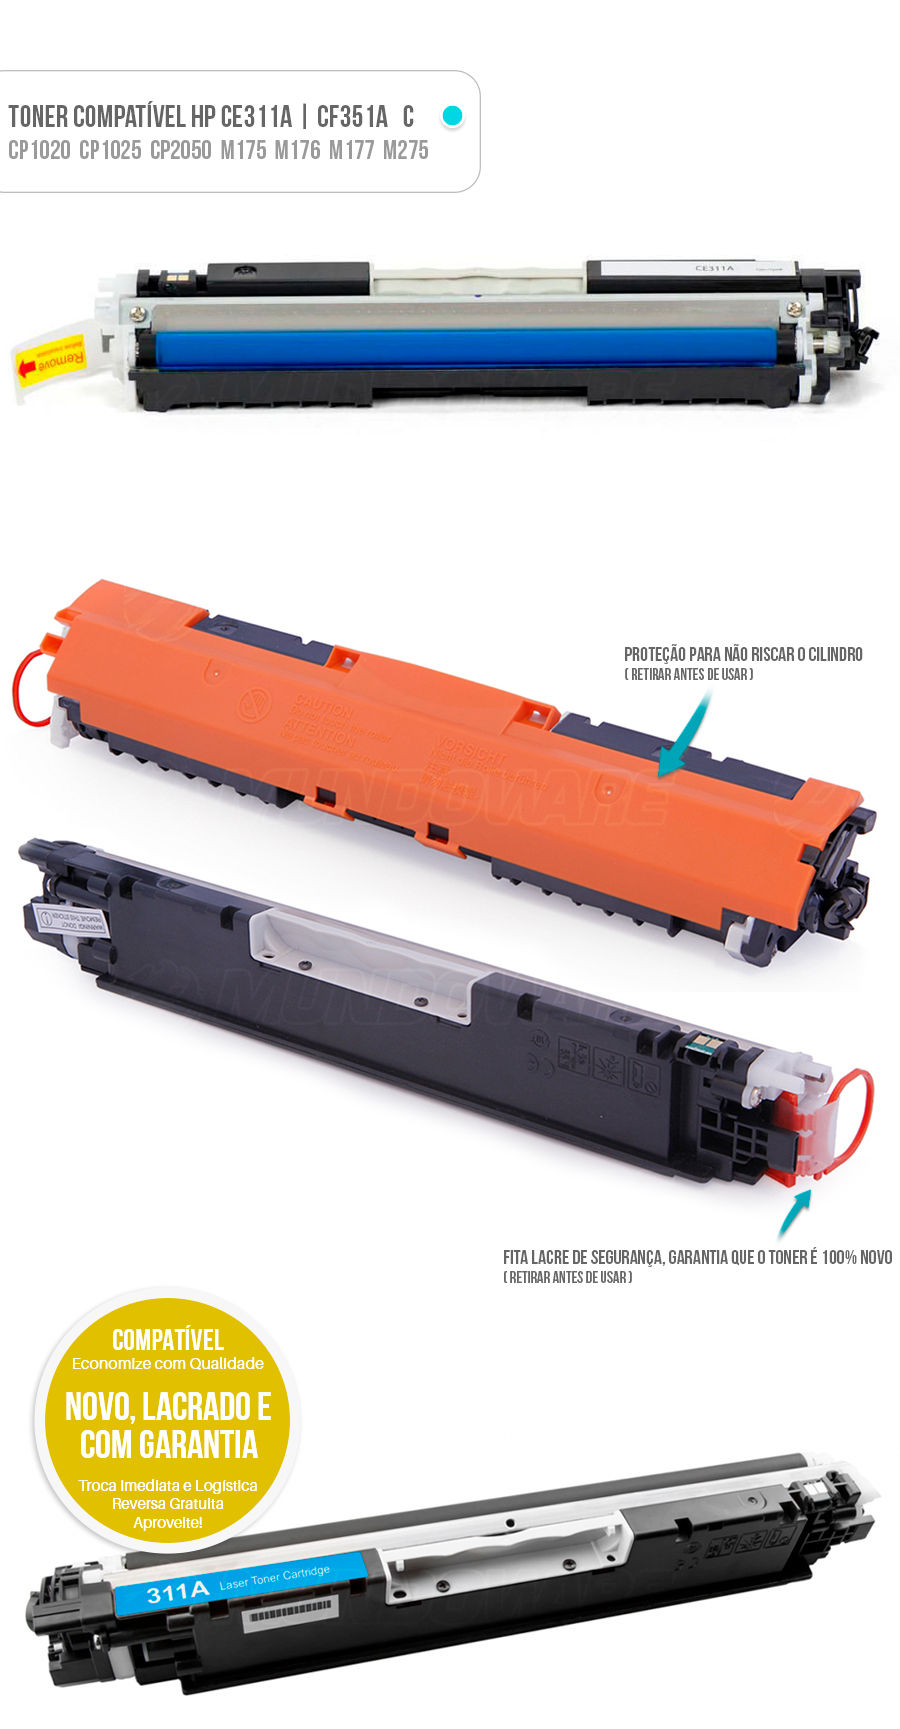 CP1020 CP1020WN CP1025 CP1025NW PRO100 M175 M175A M175NW M275 M275NW M176 M176N M177 M177FW Tonner Color HP Ciano